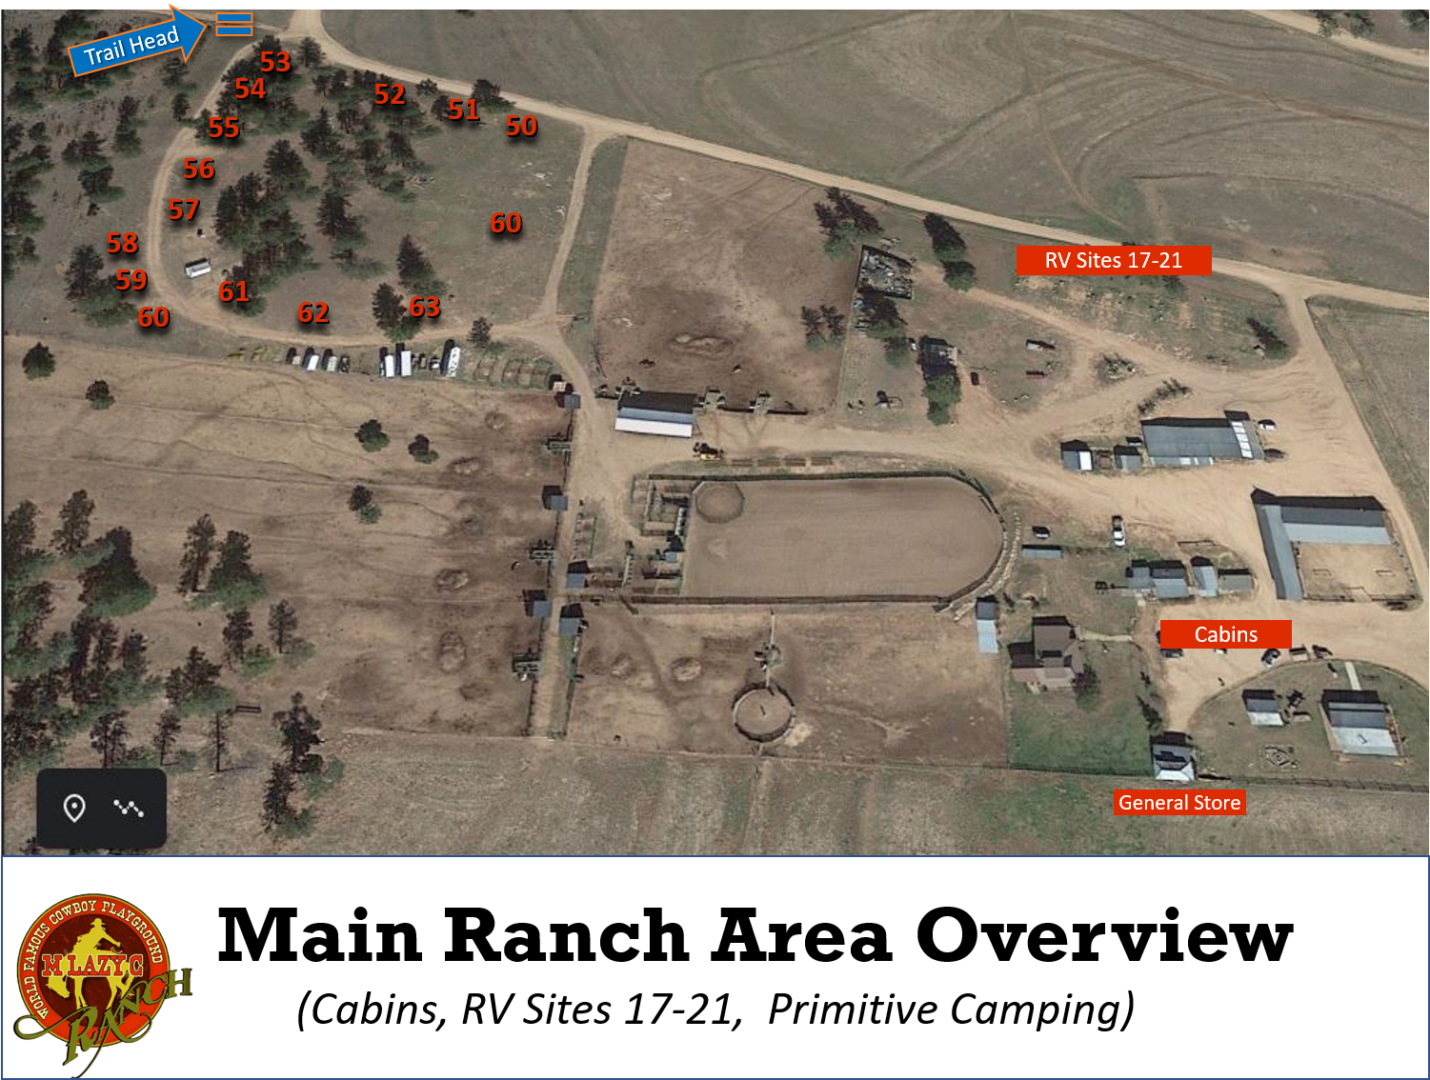 Main Ranch Area Overview